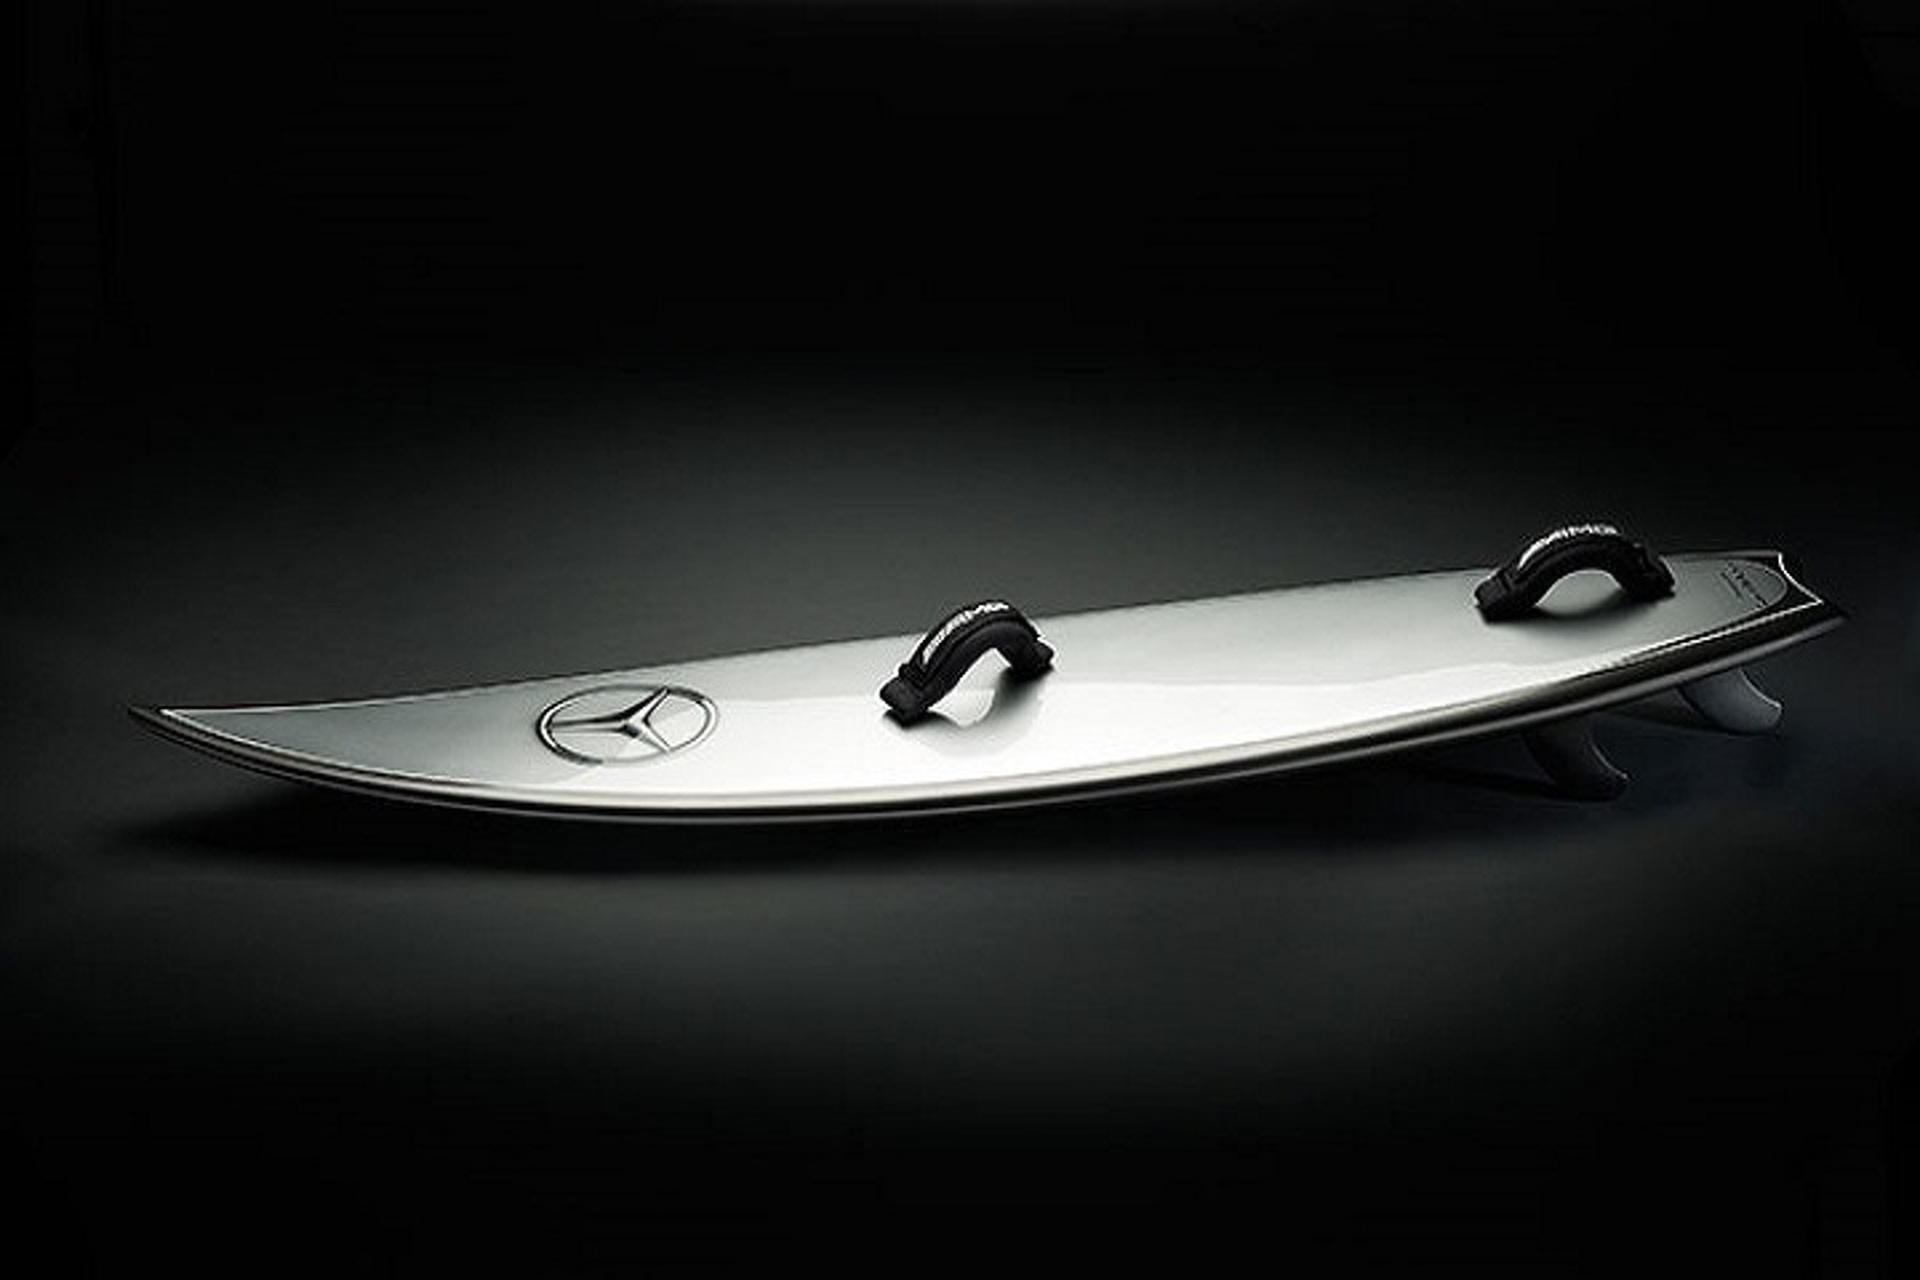 This Incredible Mercedes-Benz Surfboard is Made Entirely of Cork